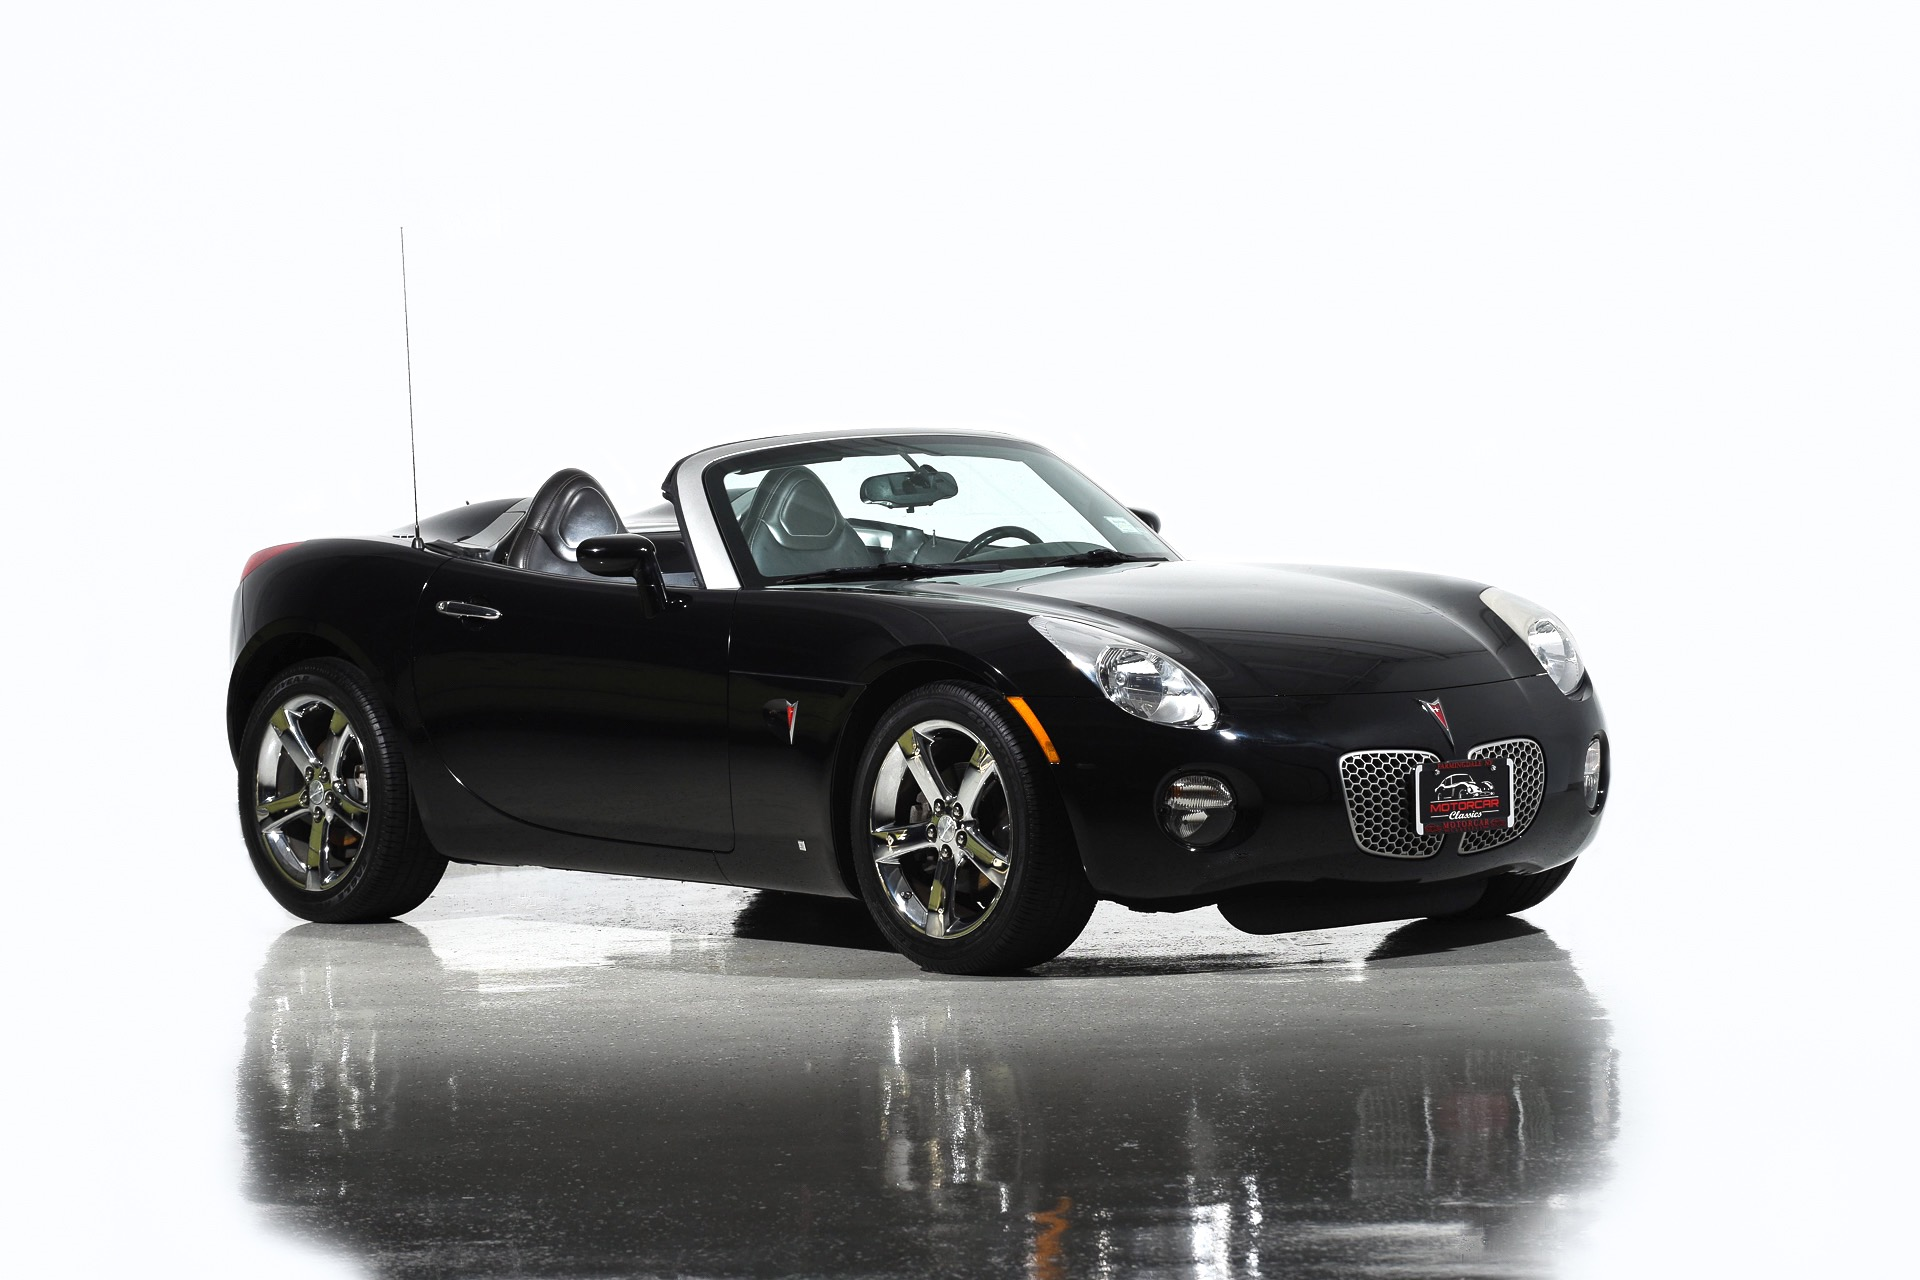 Used 2008 Pontiac Solstice For Sale 13 500 Motorcar